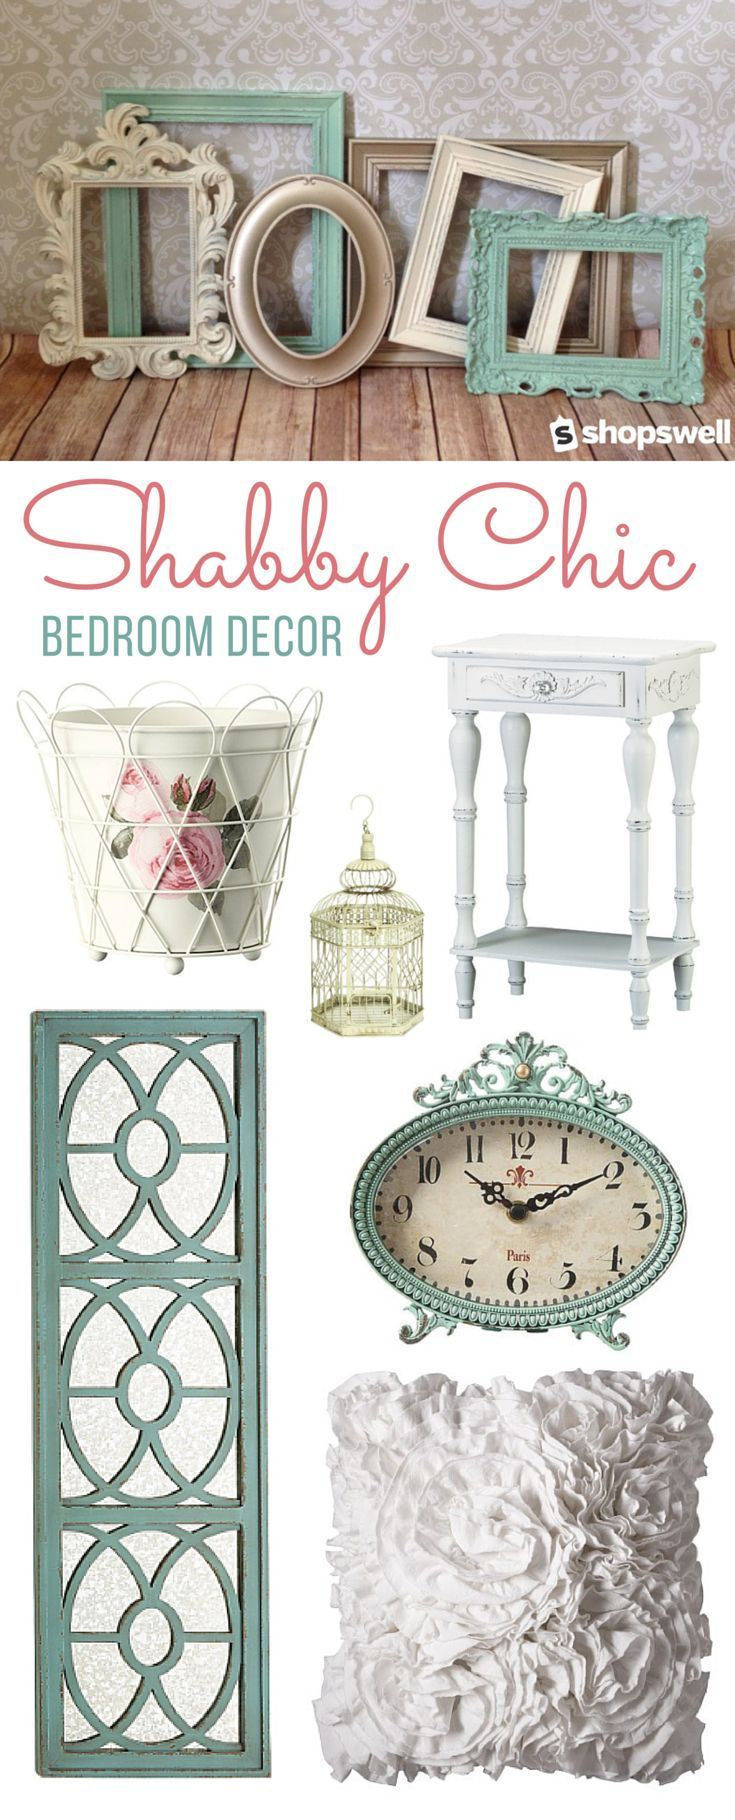 Can't get enough of shabby chic decor? This home decorating collection has everything you need to create the perfect shabby chic bedroom. Shop now!